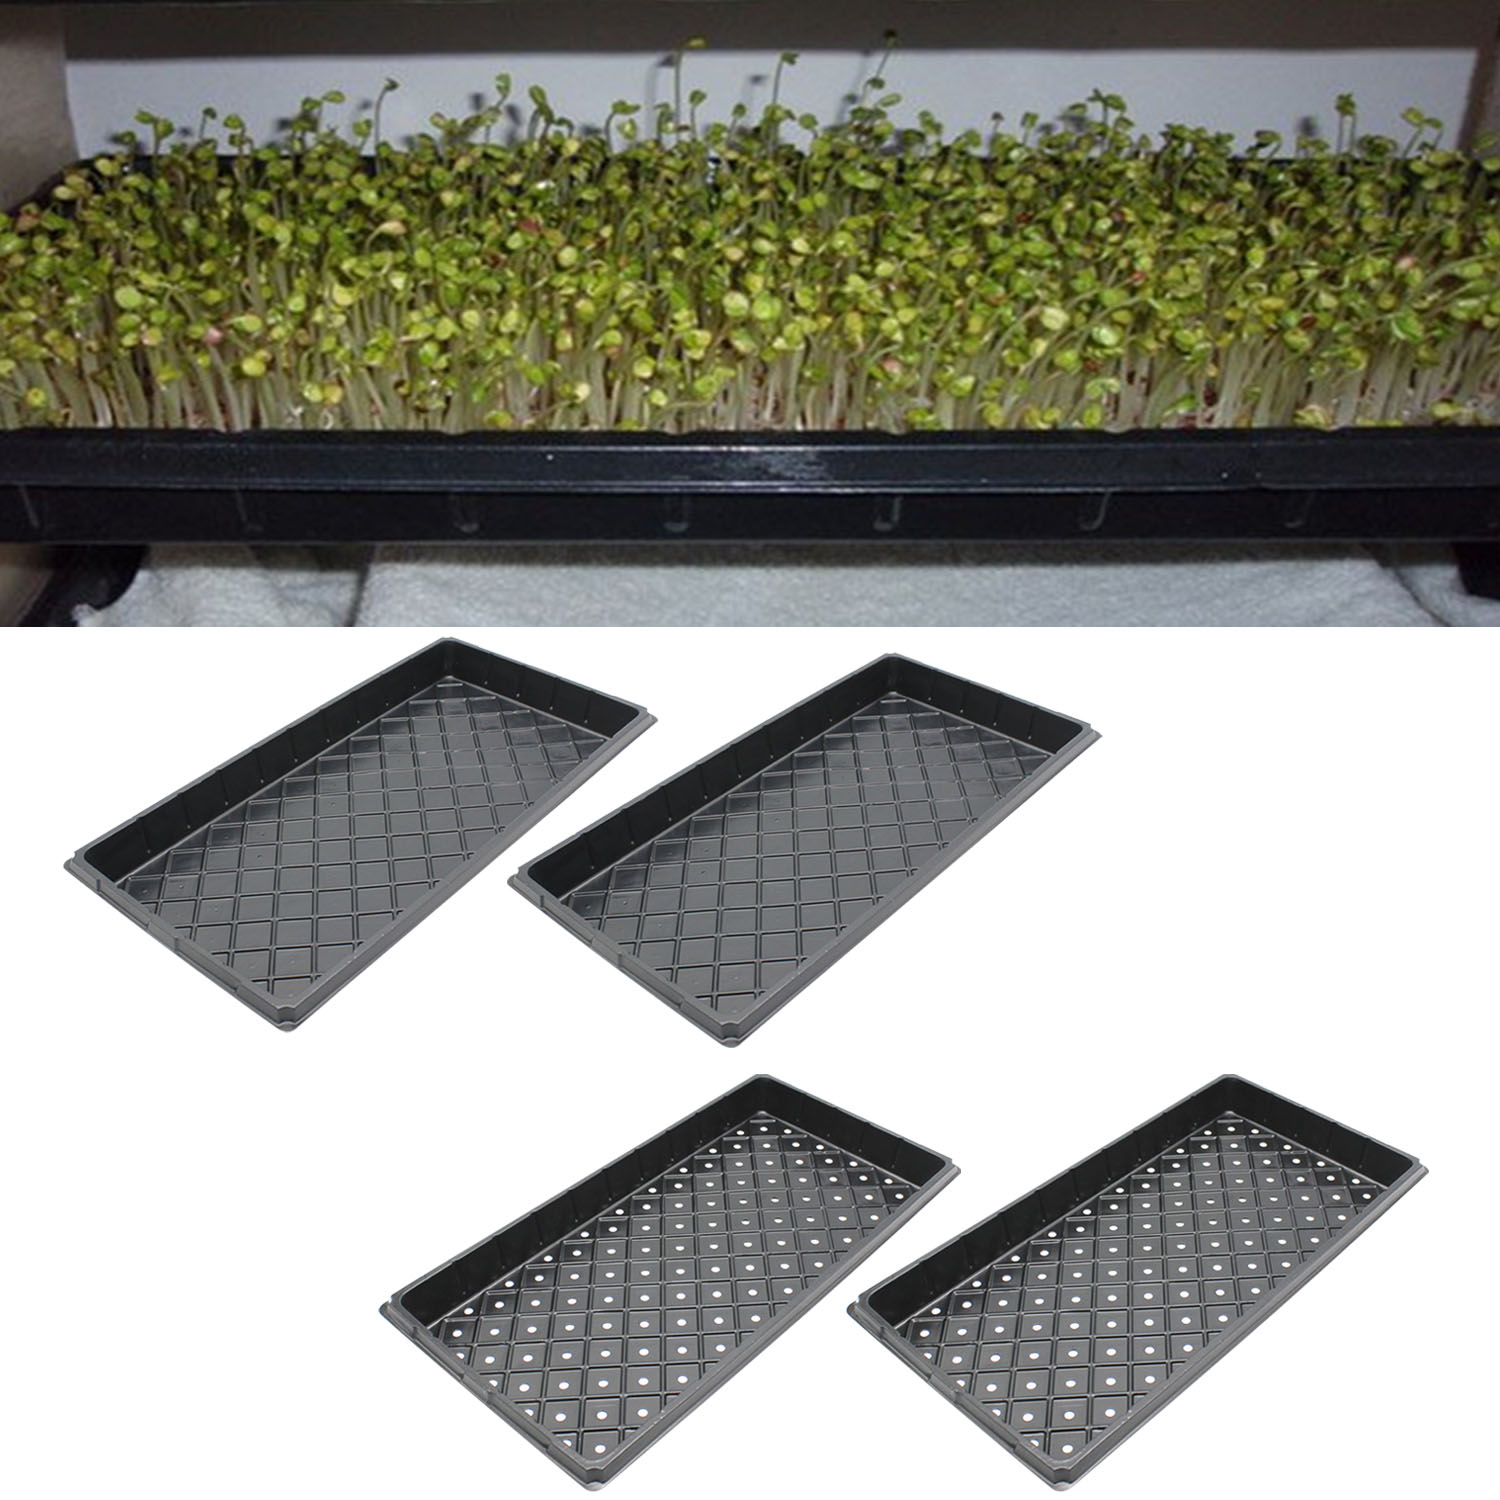 Behogar 2PCS 54x28x5cm Reusable Seedling Seed Starter Growing Trays For Garden Greenhouse Succulent Wheatgrass Microgreens